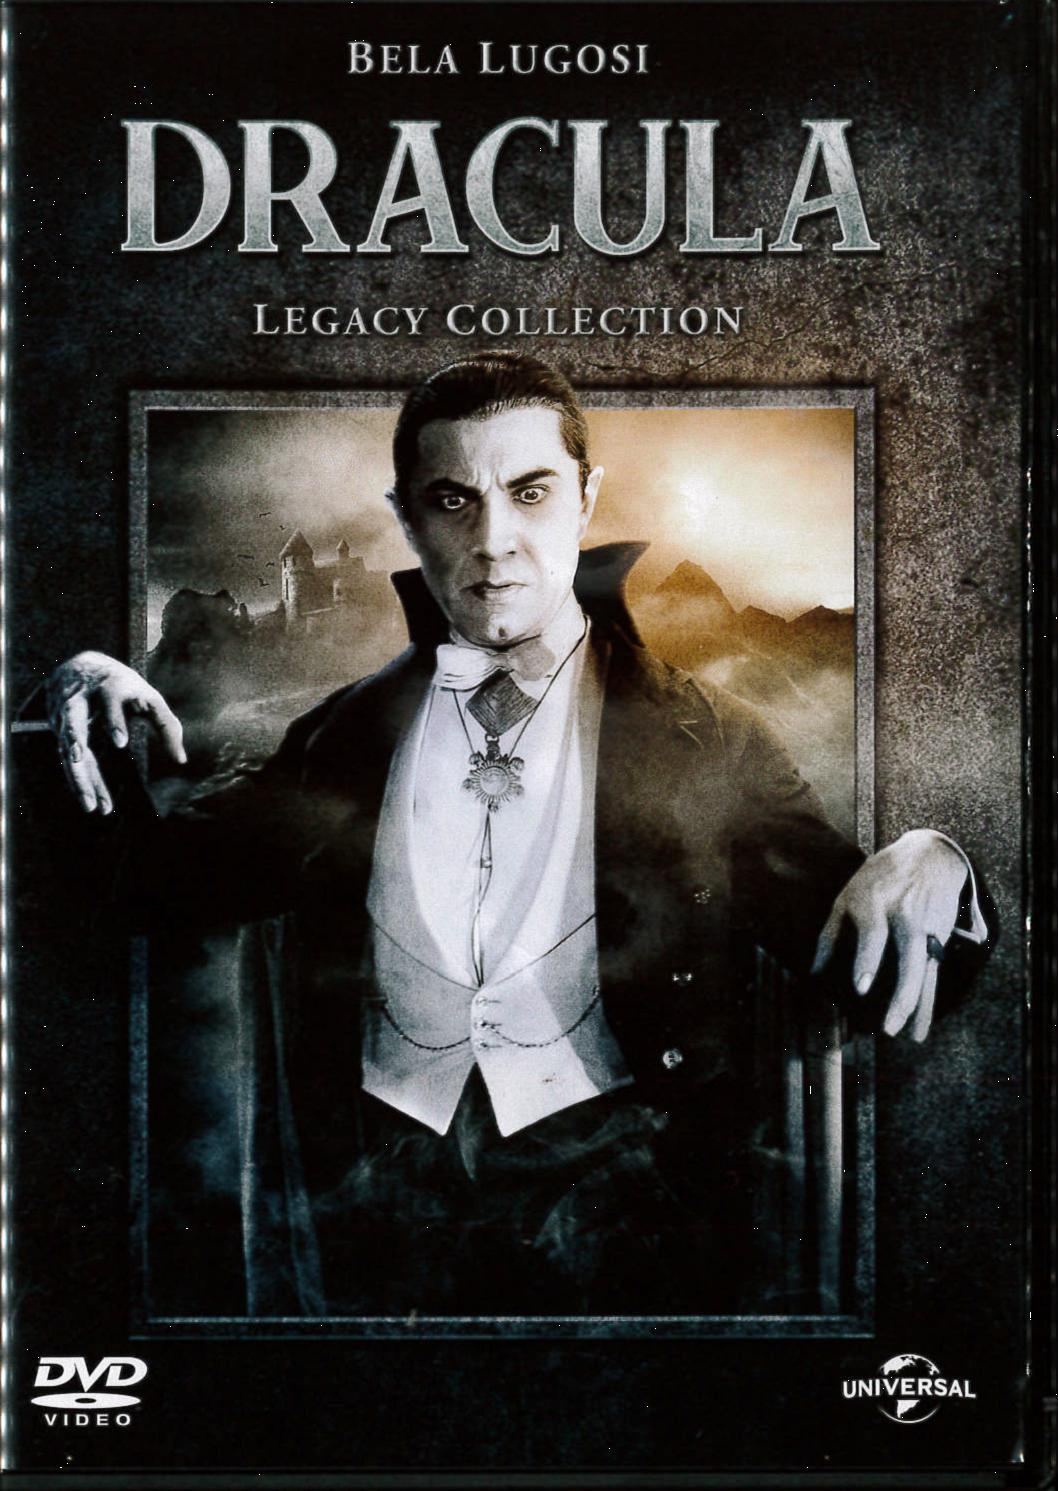 DRACULA - LEGACY COLLECTION (DVD)